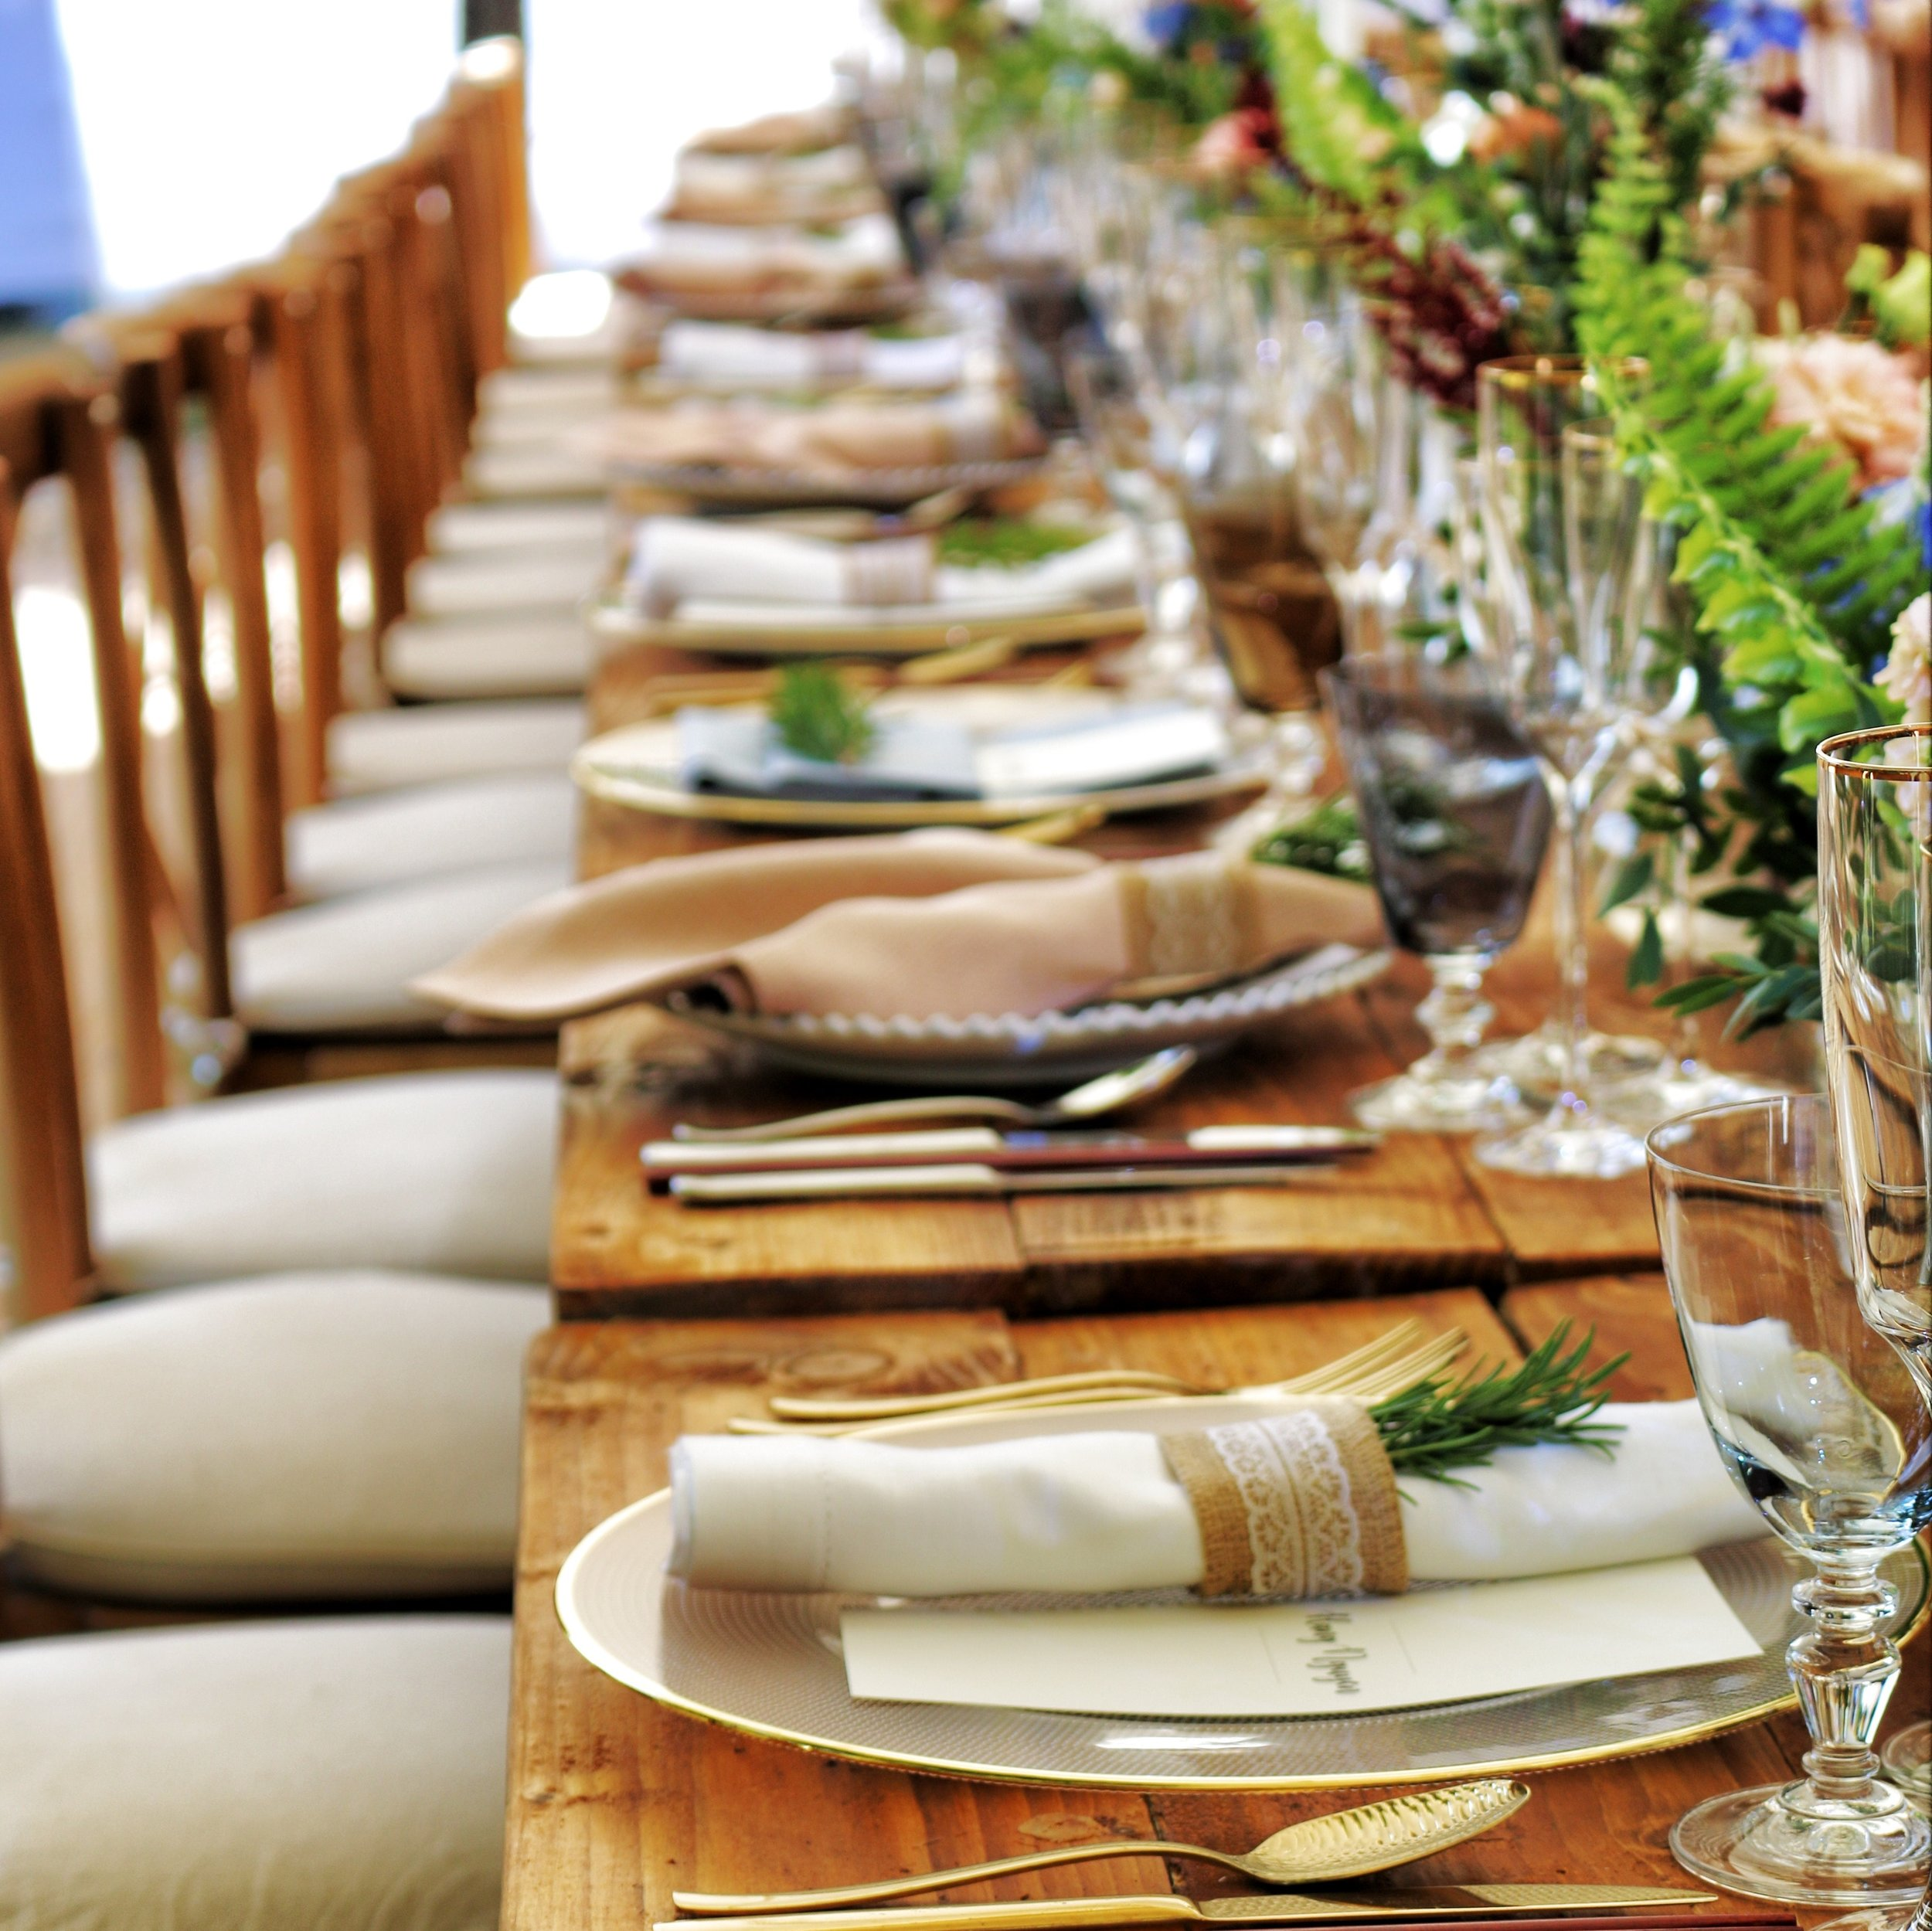 banquet-catering-chairs-1395967.jpg